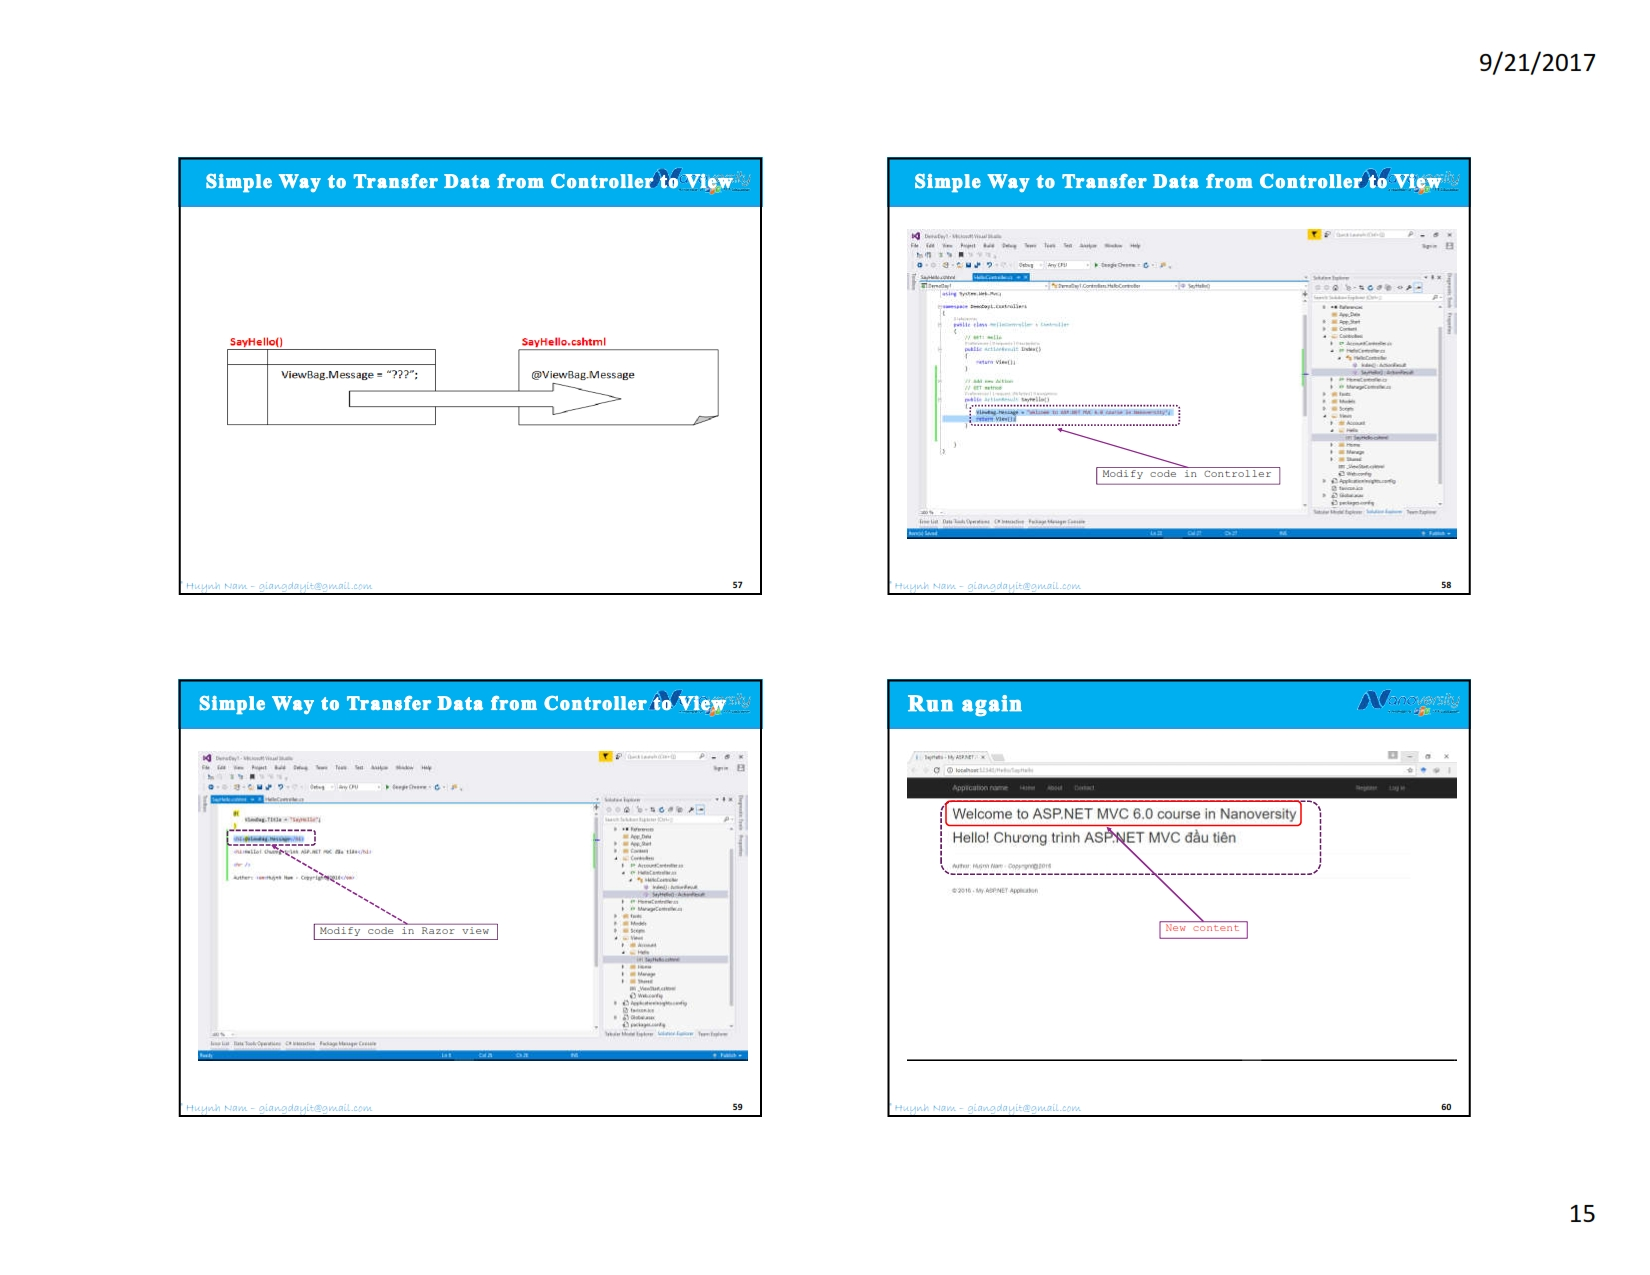 can-ban-tao-project-controller-view-razor-session-Intro-trong-mvc6-015.jpg